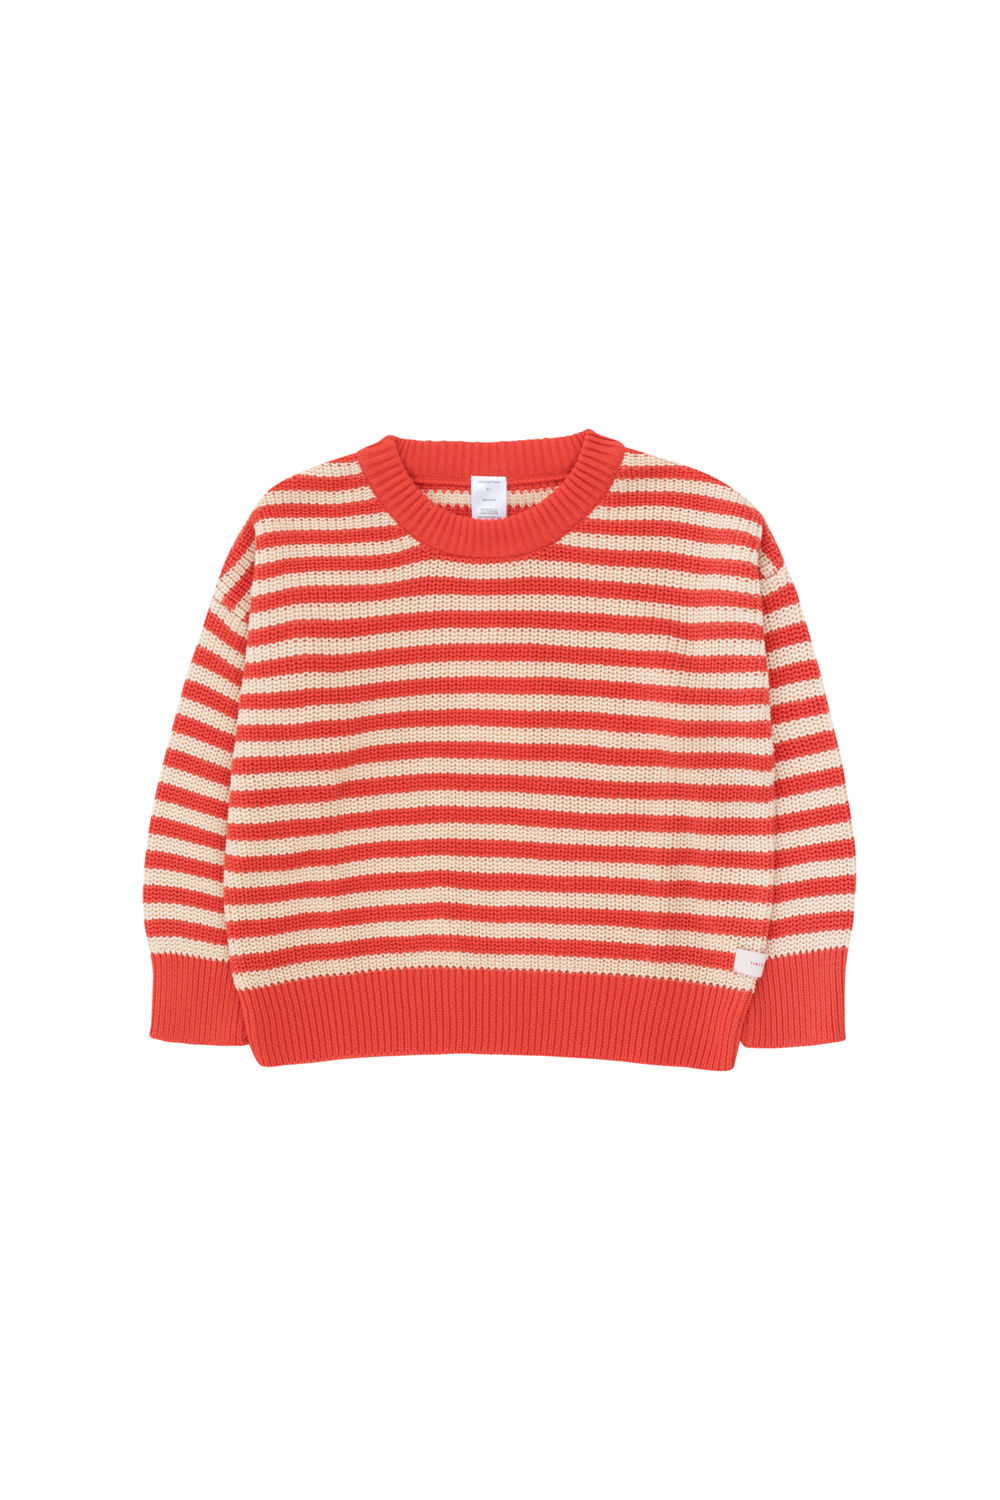 Tiny Cottons STRIPES SWEATER, Cream&Red